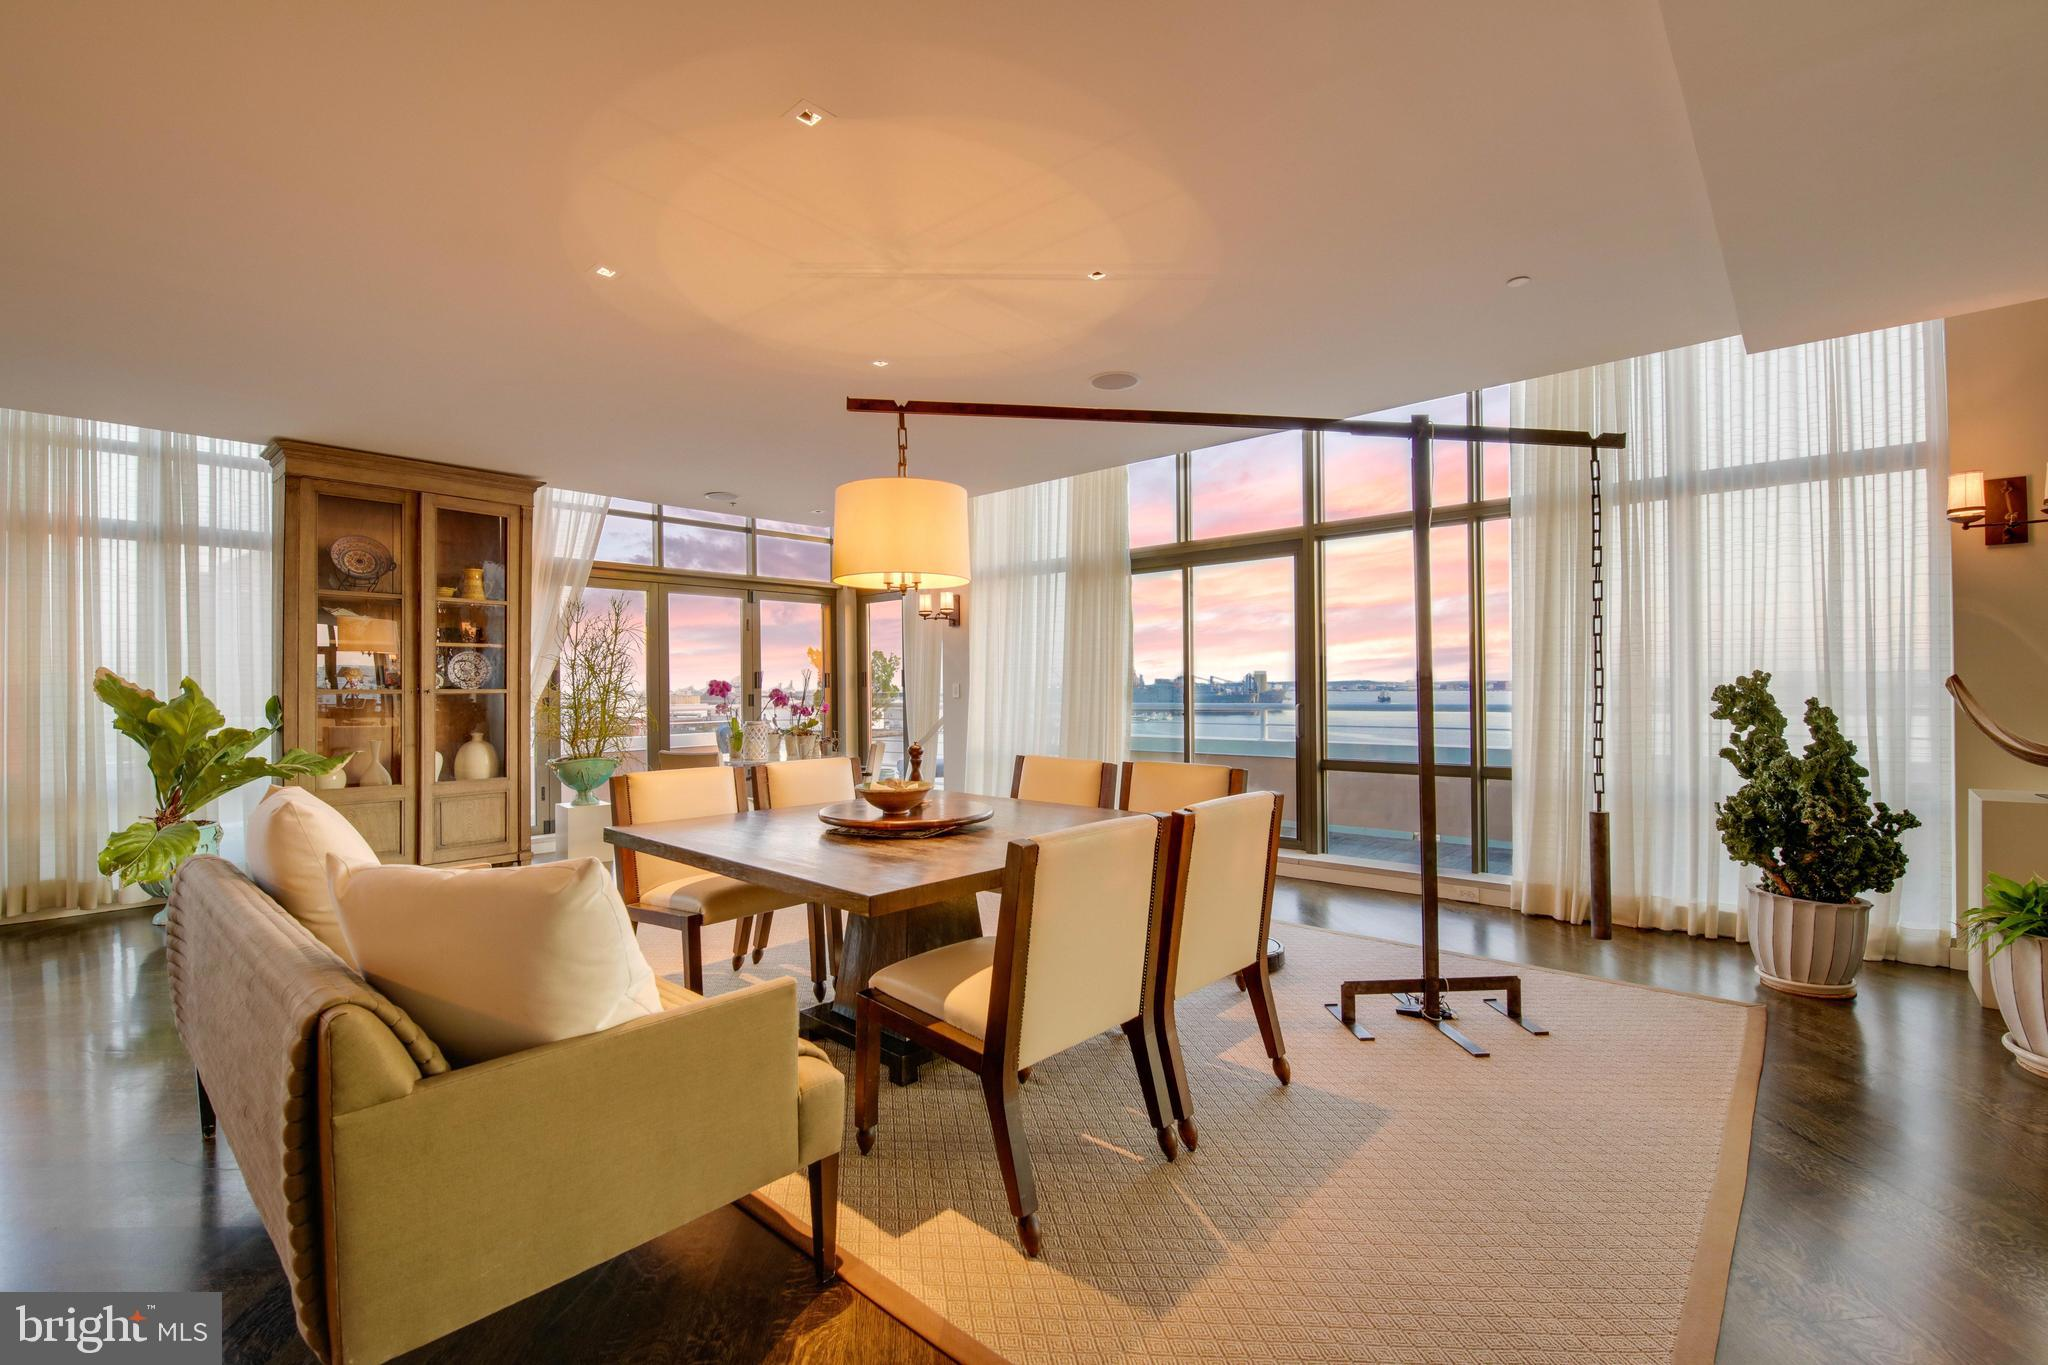 For those seeking modern luxury, elegance and comfort, this waterfront penthouse in Canton Cove provides nearly 5,000 square feet of impeccably designed living space. Overlooking Baltimore's Inner Harbor, the property boasts a wrap-around terrace with southern, eastern, and western exposures for beautiful sunrises and sunsets, and ample natural light throughout the day.  In 2008, the property was thoughtfully re-designed by esteemed architect Bobby McAlpine to maximize views, and fully renovated with high-end finishes, appliances, and systems. The open floorplan lends itself to both entertaining and everyday living, with easy separation if needed.  Adjacent to Canton Waterfront Park and minutes to Canton Crossing and a multitude of restaurants and shops, the walkability of this property is unmatched. Enjoy the Baltimore Waterfront Promenade, easy access to marinas, and proximity to Fells Point and Harbor East.  Notable features of the property include floor-to-ceiling windows, spectacular views, and terrace access from nearly every room, cove lighting, custom closets, window treatments & built-ins, a Bravas Smart Home Automation System that controls audio/visual, lighting and thermostat from your phone, a built-in bar and a butler's pantry, chef's kitchen with Viking & Wolf appliances,  two gas fireplaces, two sets of washer/dryer, beautiful marble baths with custom tile work.  * The property is being sold furnished, with high-end, custom furniture pieces. Please contact listing agent for detailed list.